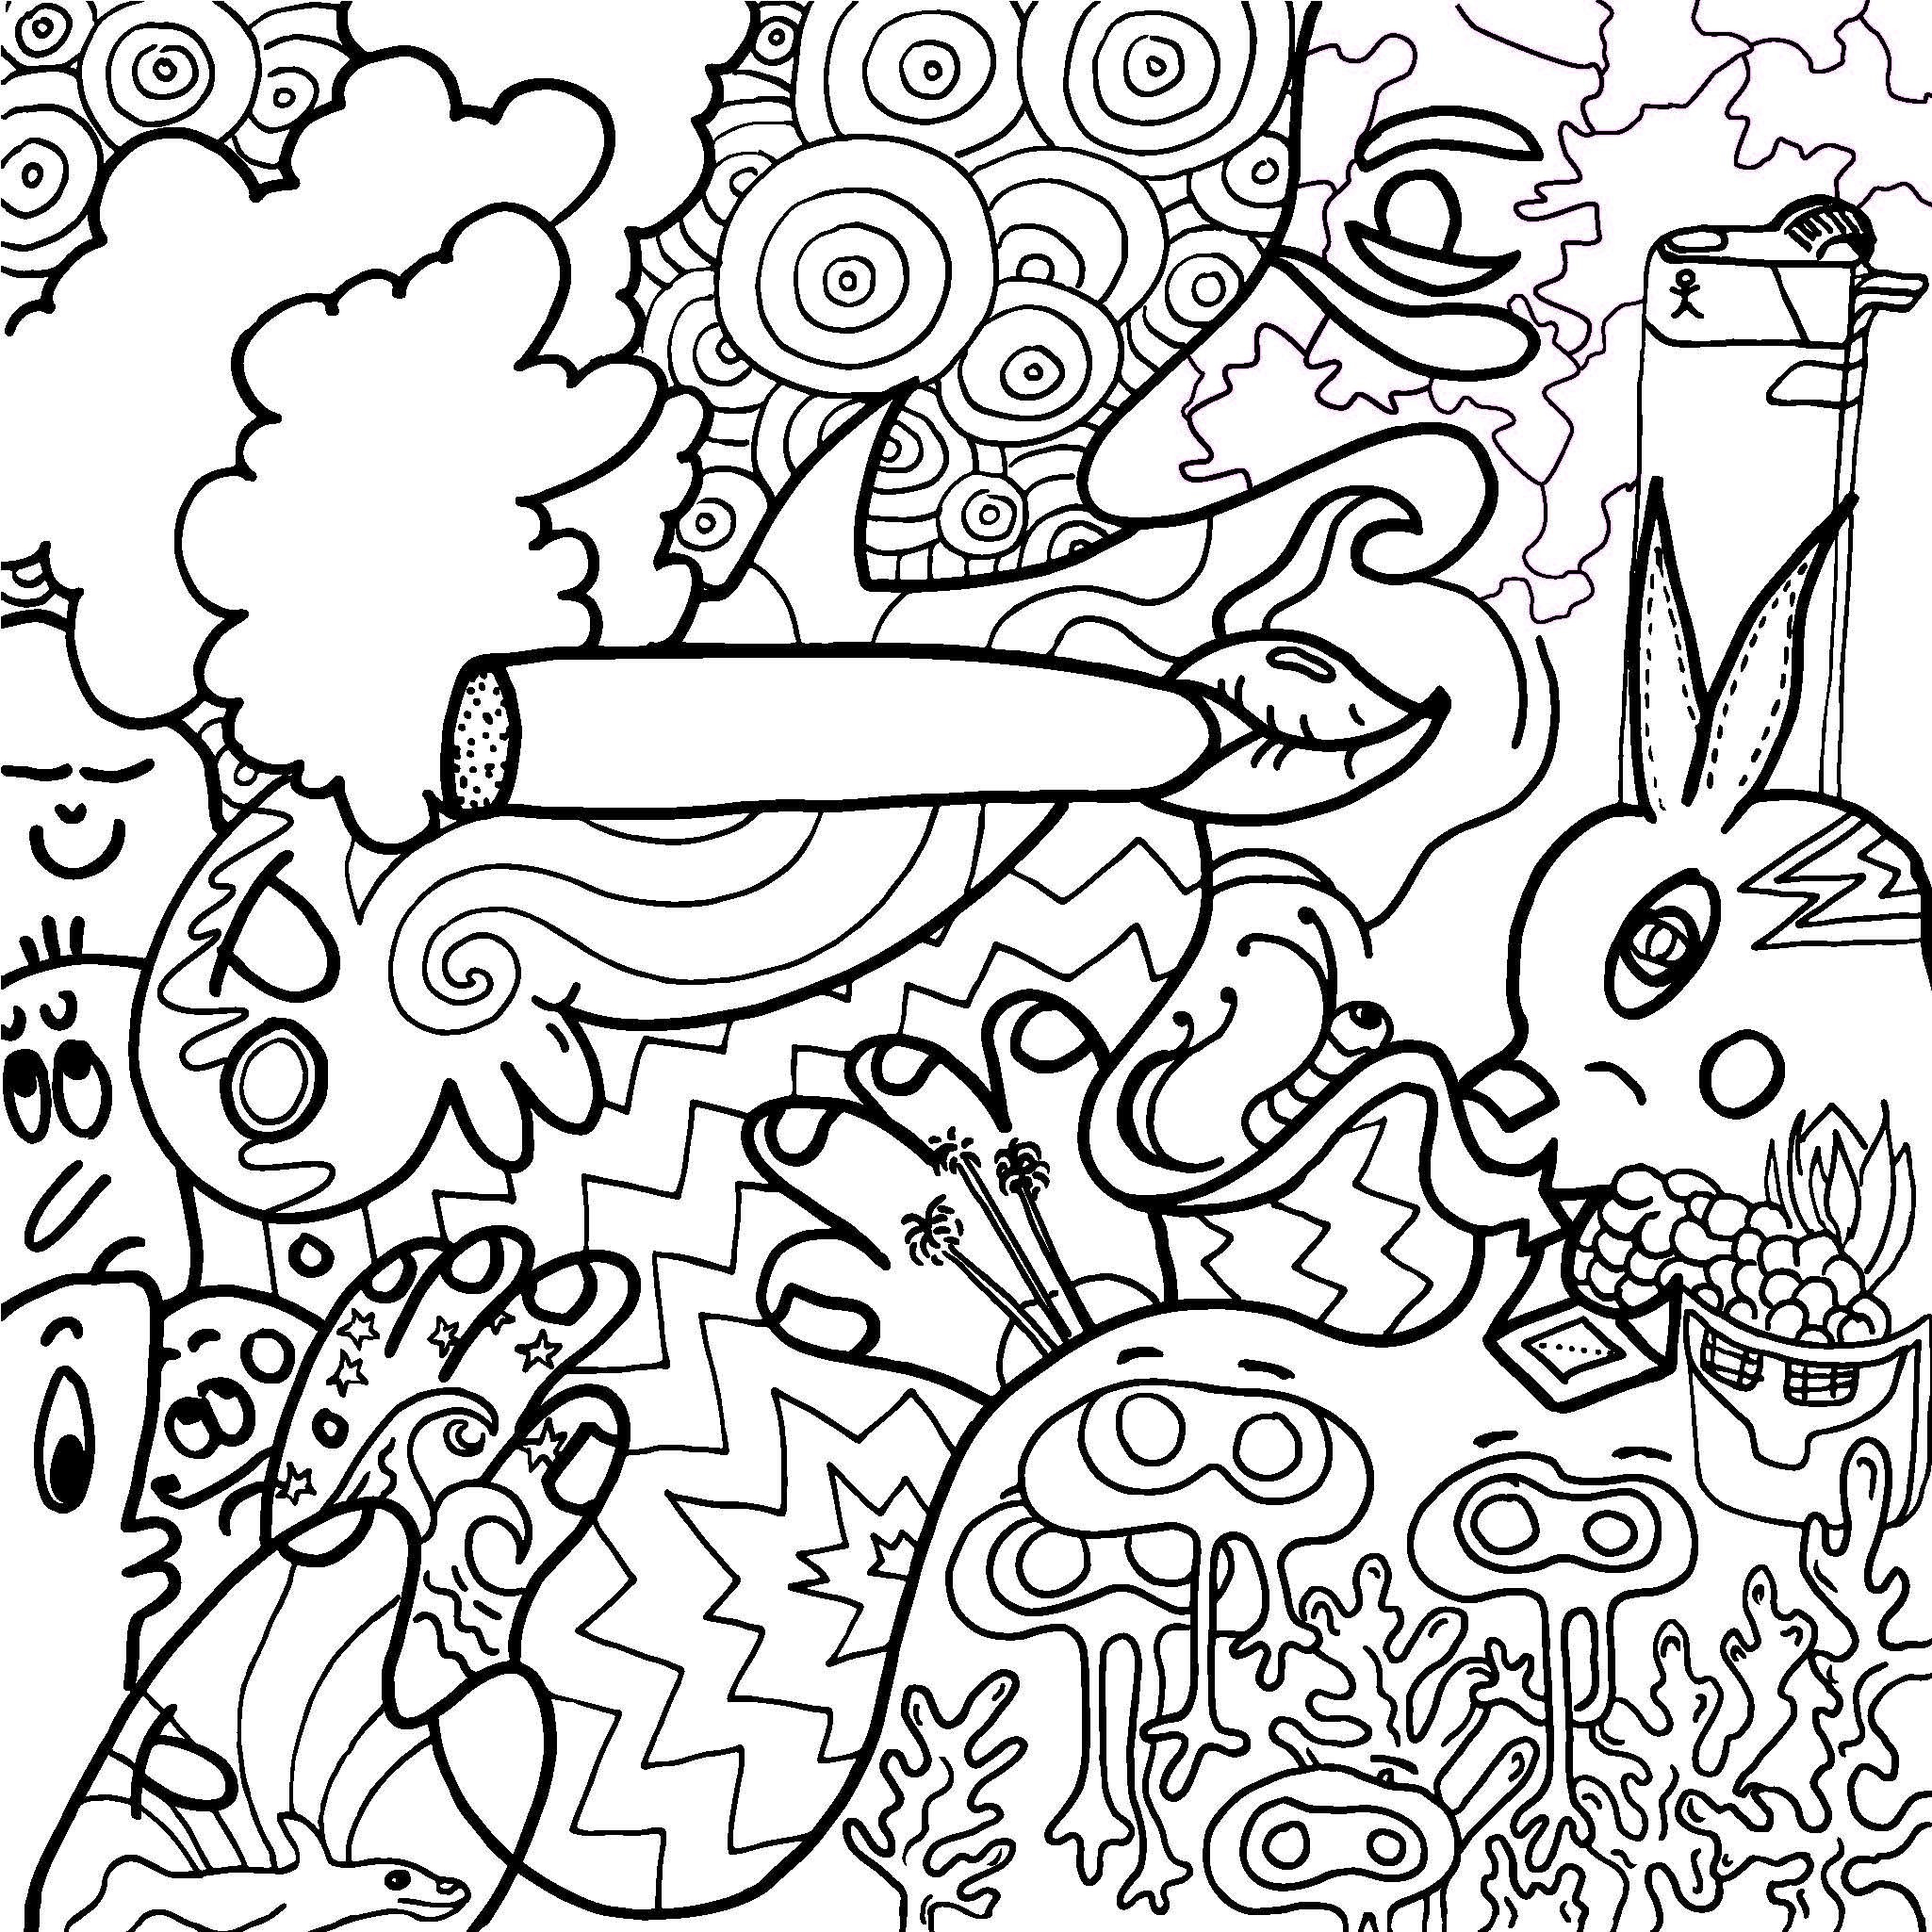 Stoner Coloring Pages  Stoner Coloring Pages Coloring Pages